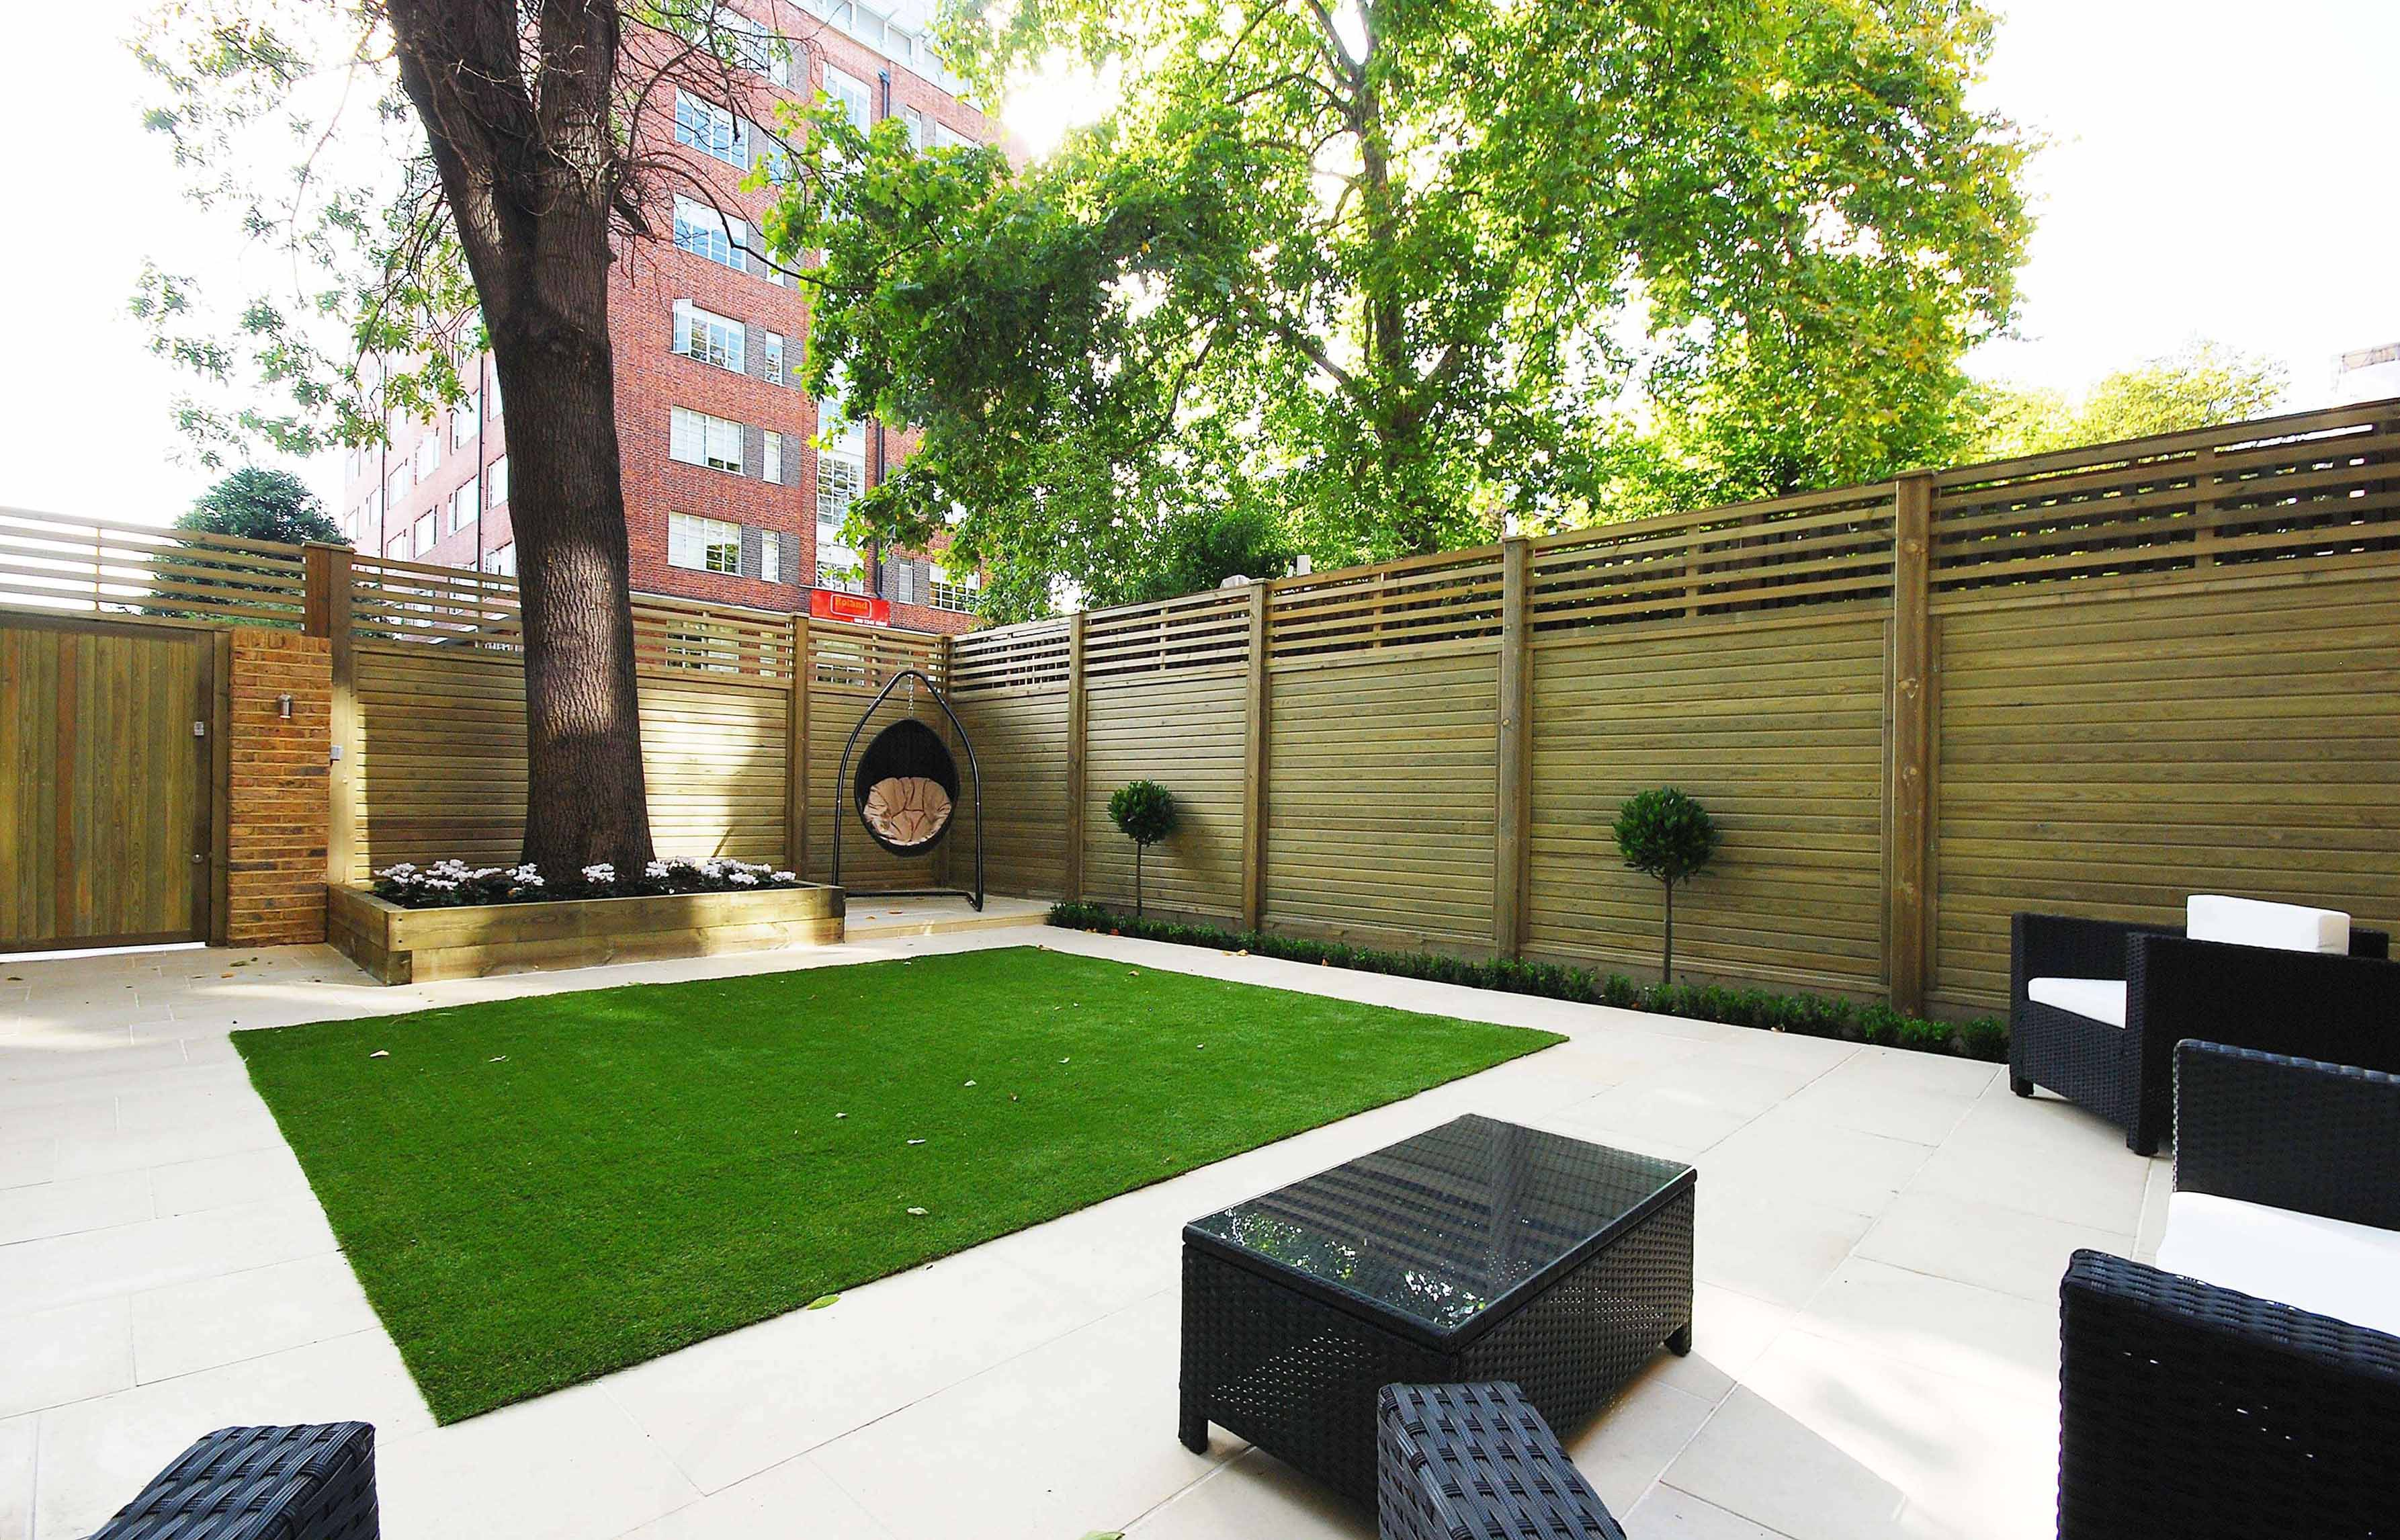 Contemporay timber fencing and garden